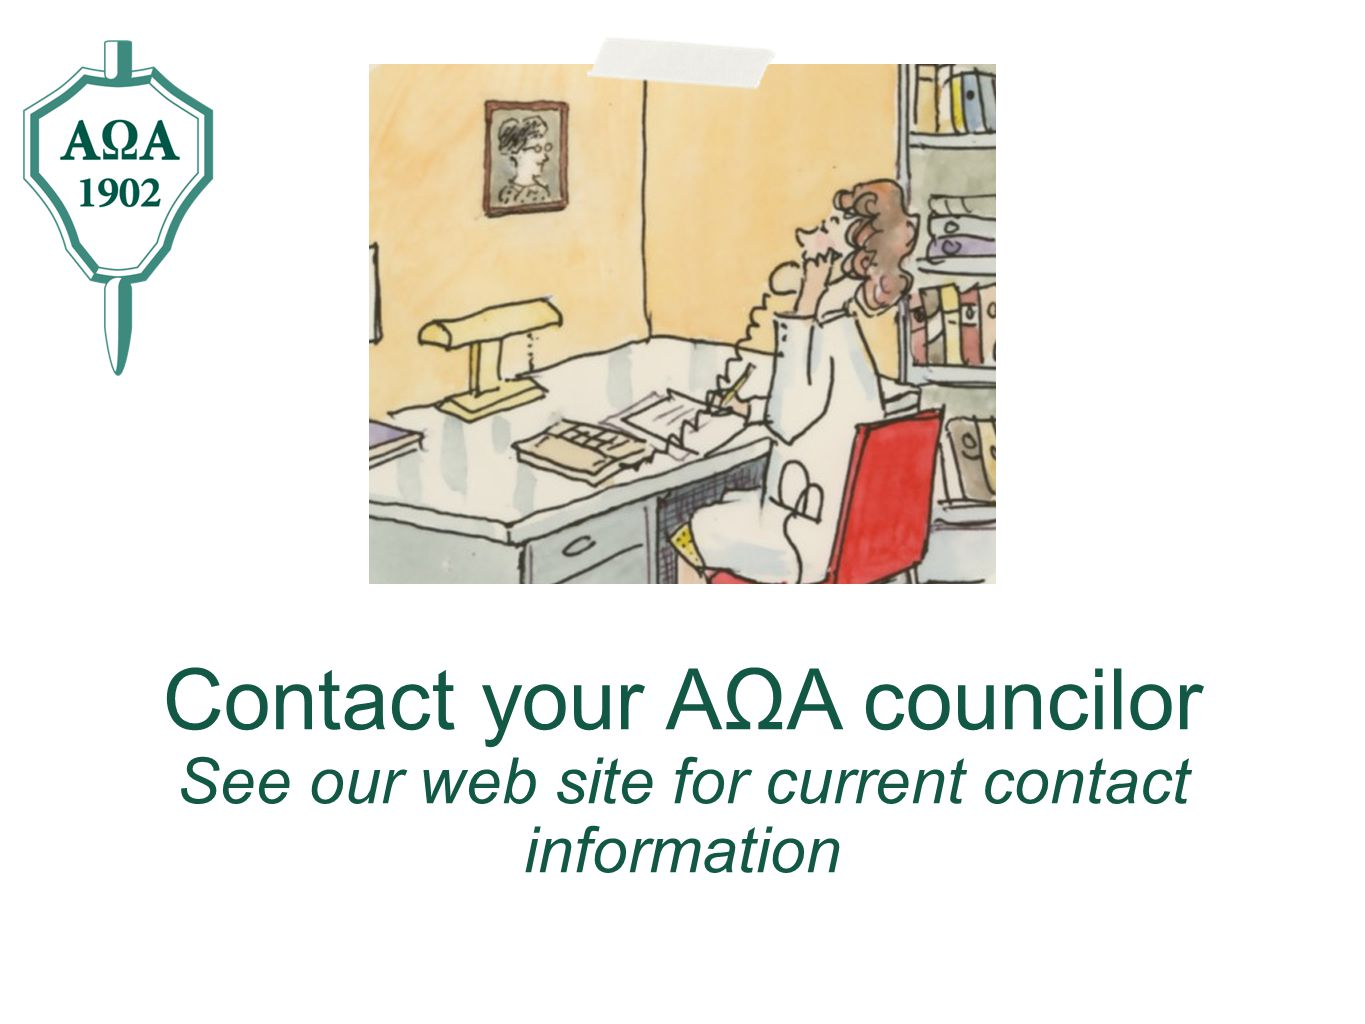 Contact your AΩA councilor See our web site for current contact information